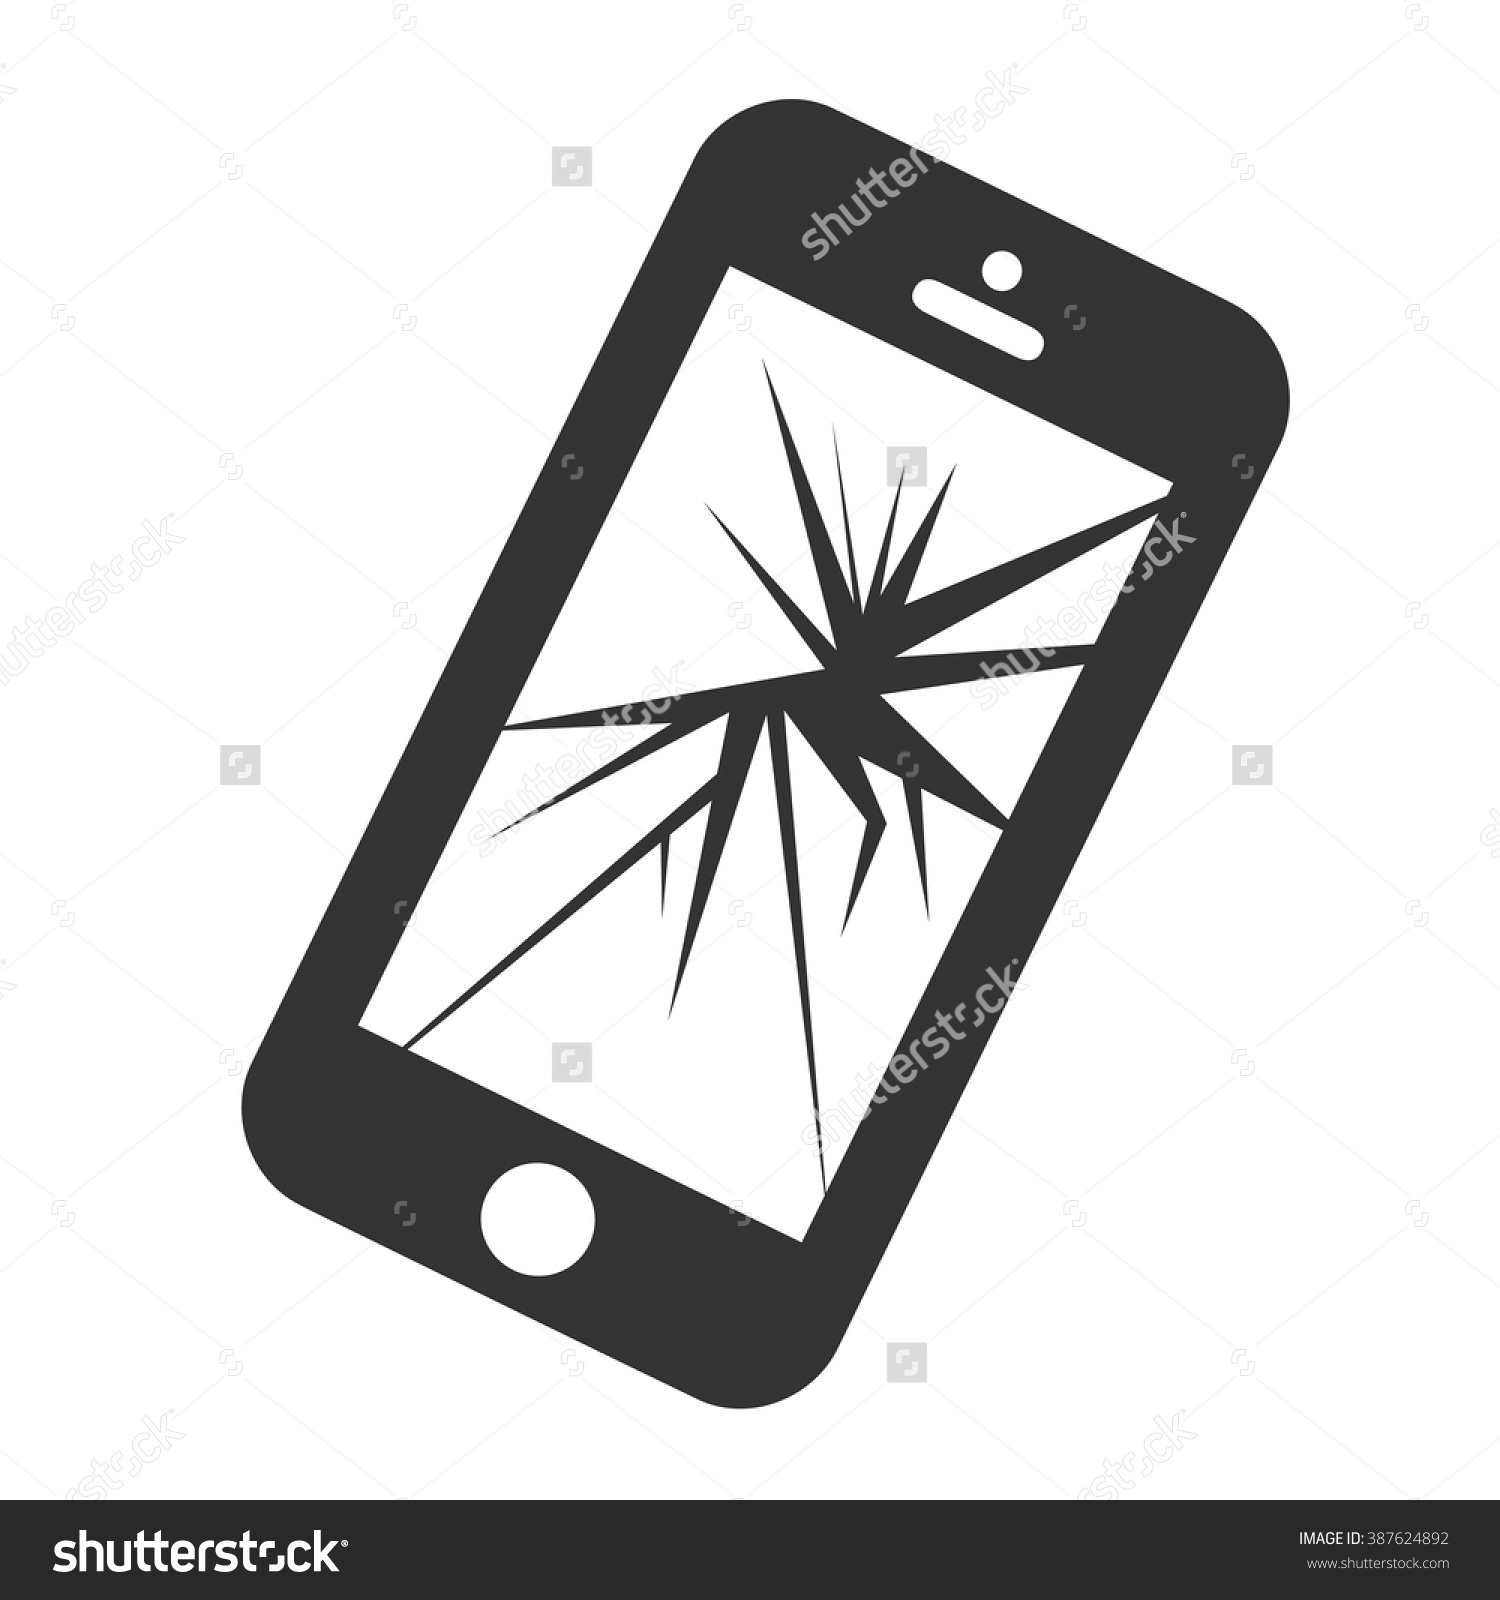 Cracked Iphone Clipart.